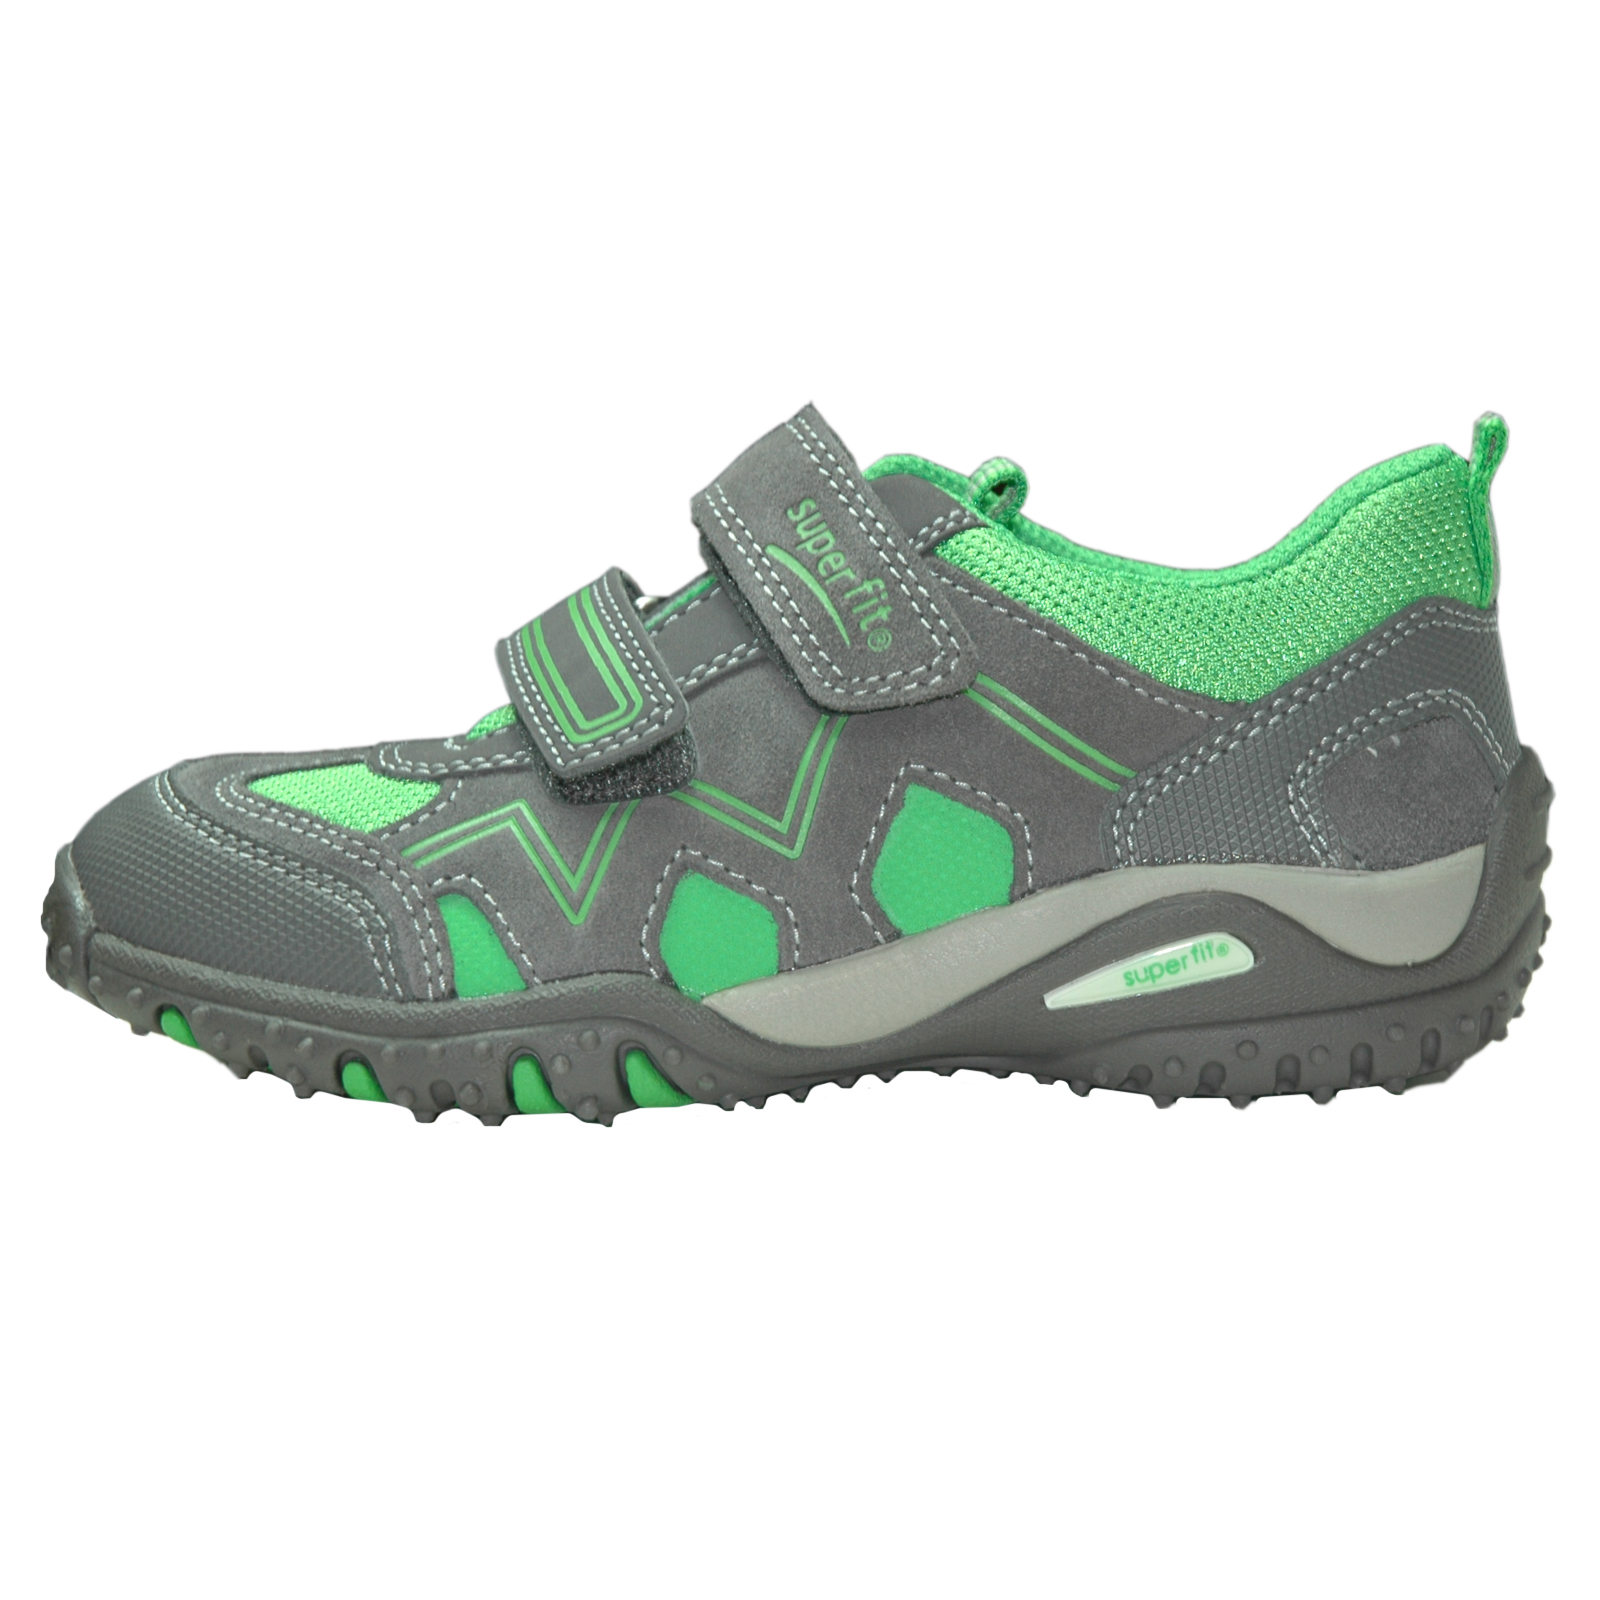 Superfit SPORT4 MINI Baby Boys Learn to walk shoes